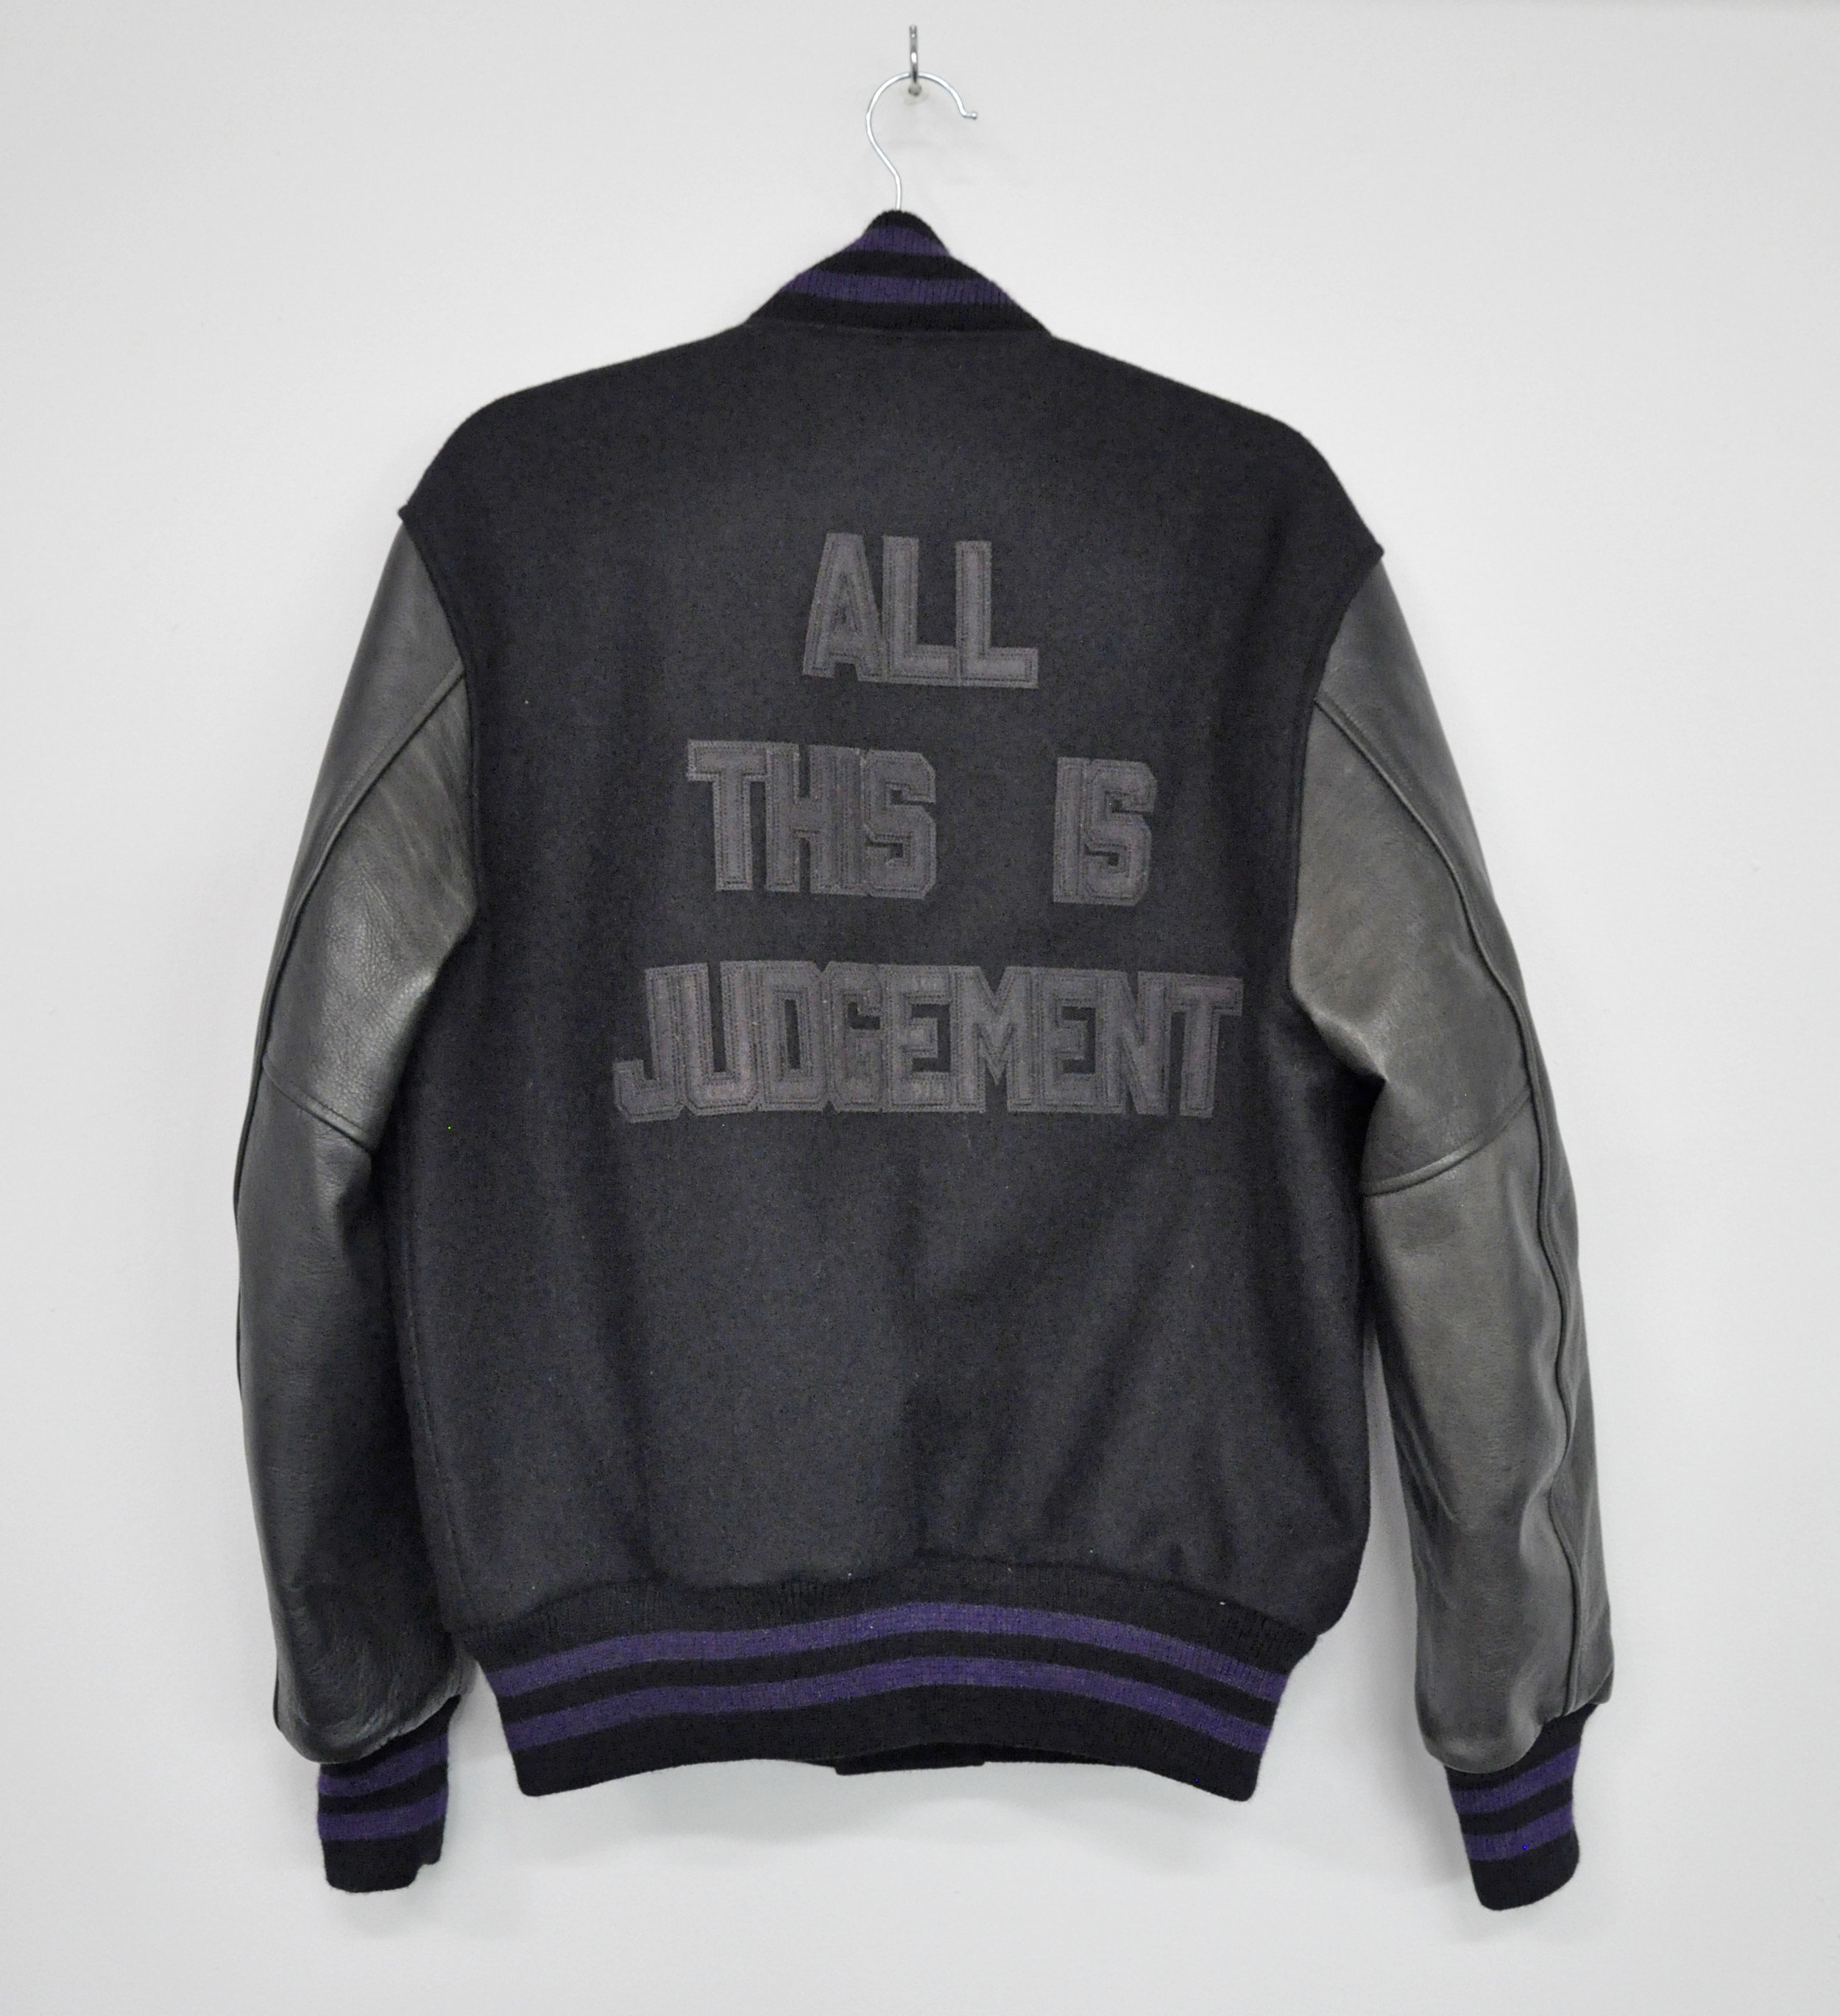 "Cheryl Pope, ""ALL THIS IS JUDGEMENT"" from ""I'VE BEEN HEARD"", in collaboration with NYC Youth on Streetball (Jacket), artist-designed letterman jacket, AP 1/2, 2017"